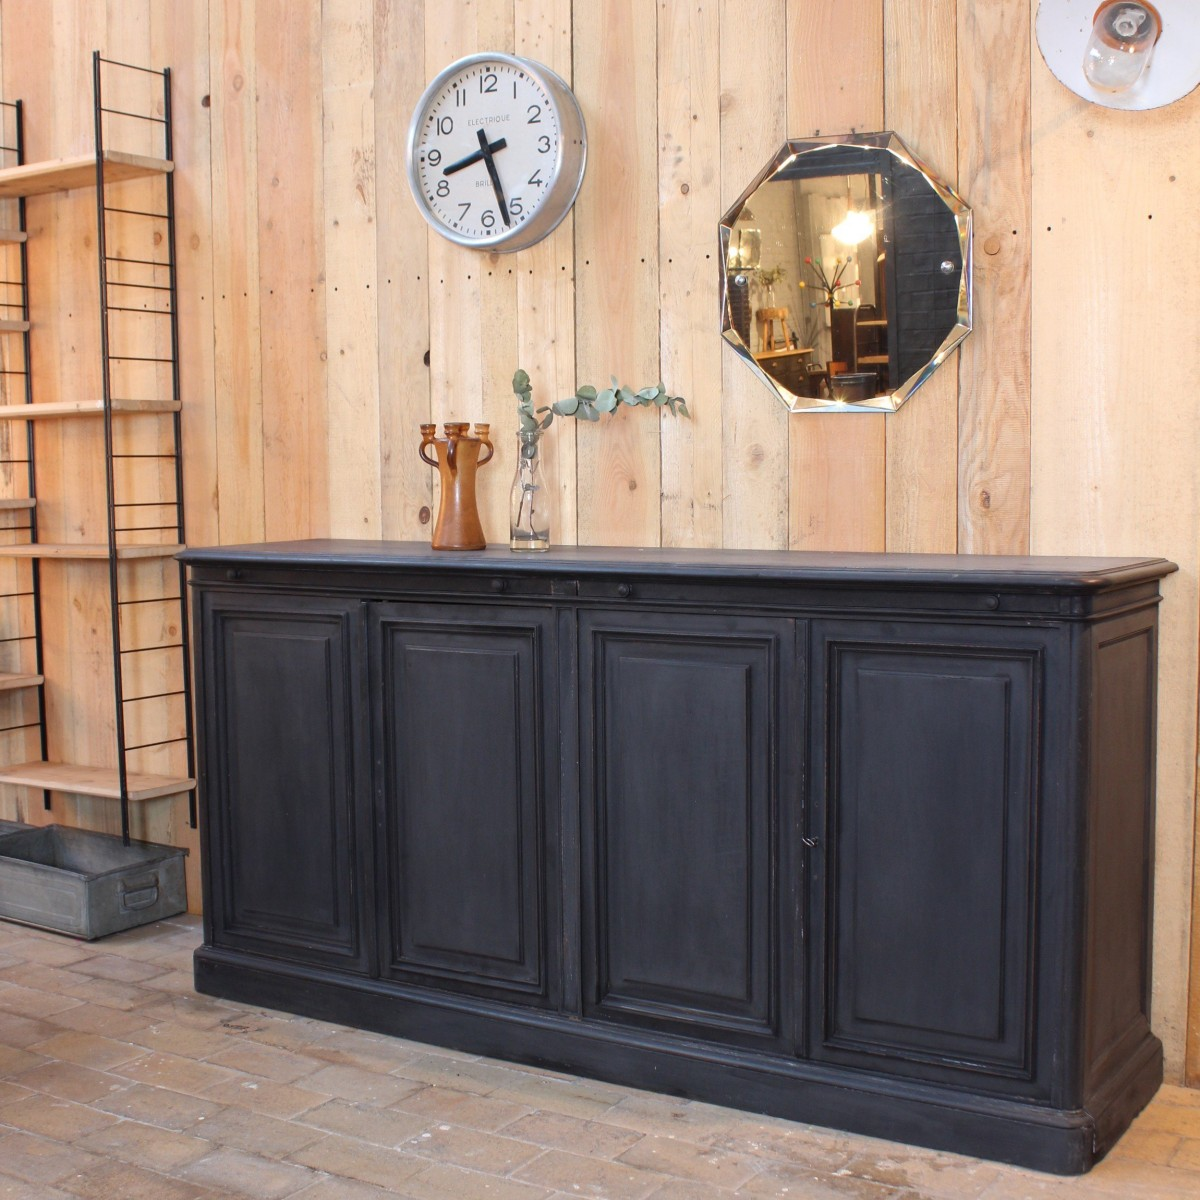 ancien meuble de droguerie en bois. Black Bedroom Furniture Sets. Home Design Ideas